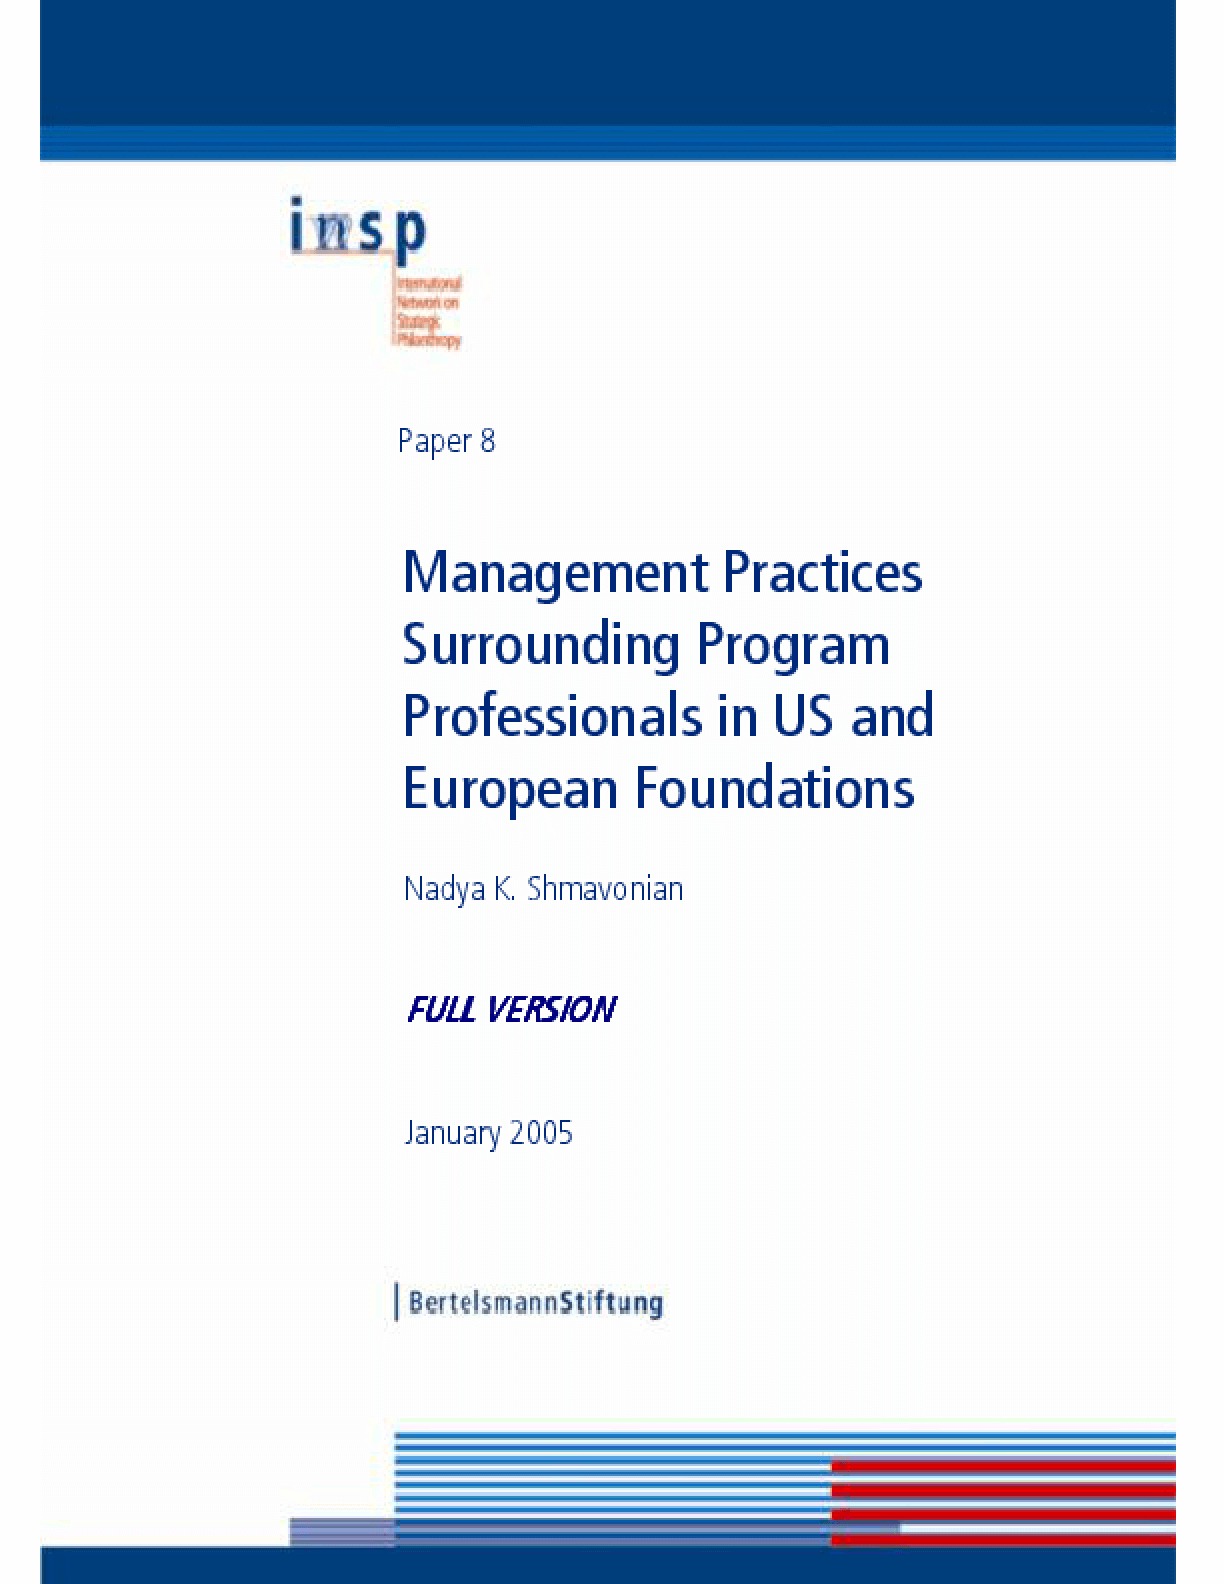 Management Practices Surrounding Program Professionals in US and European Foundations